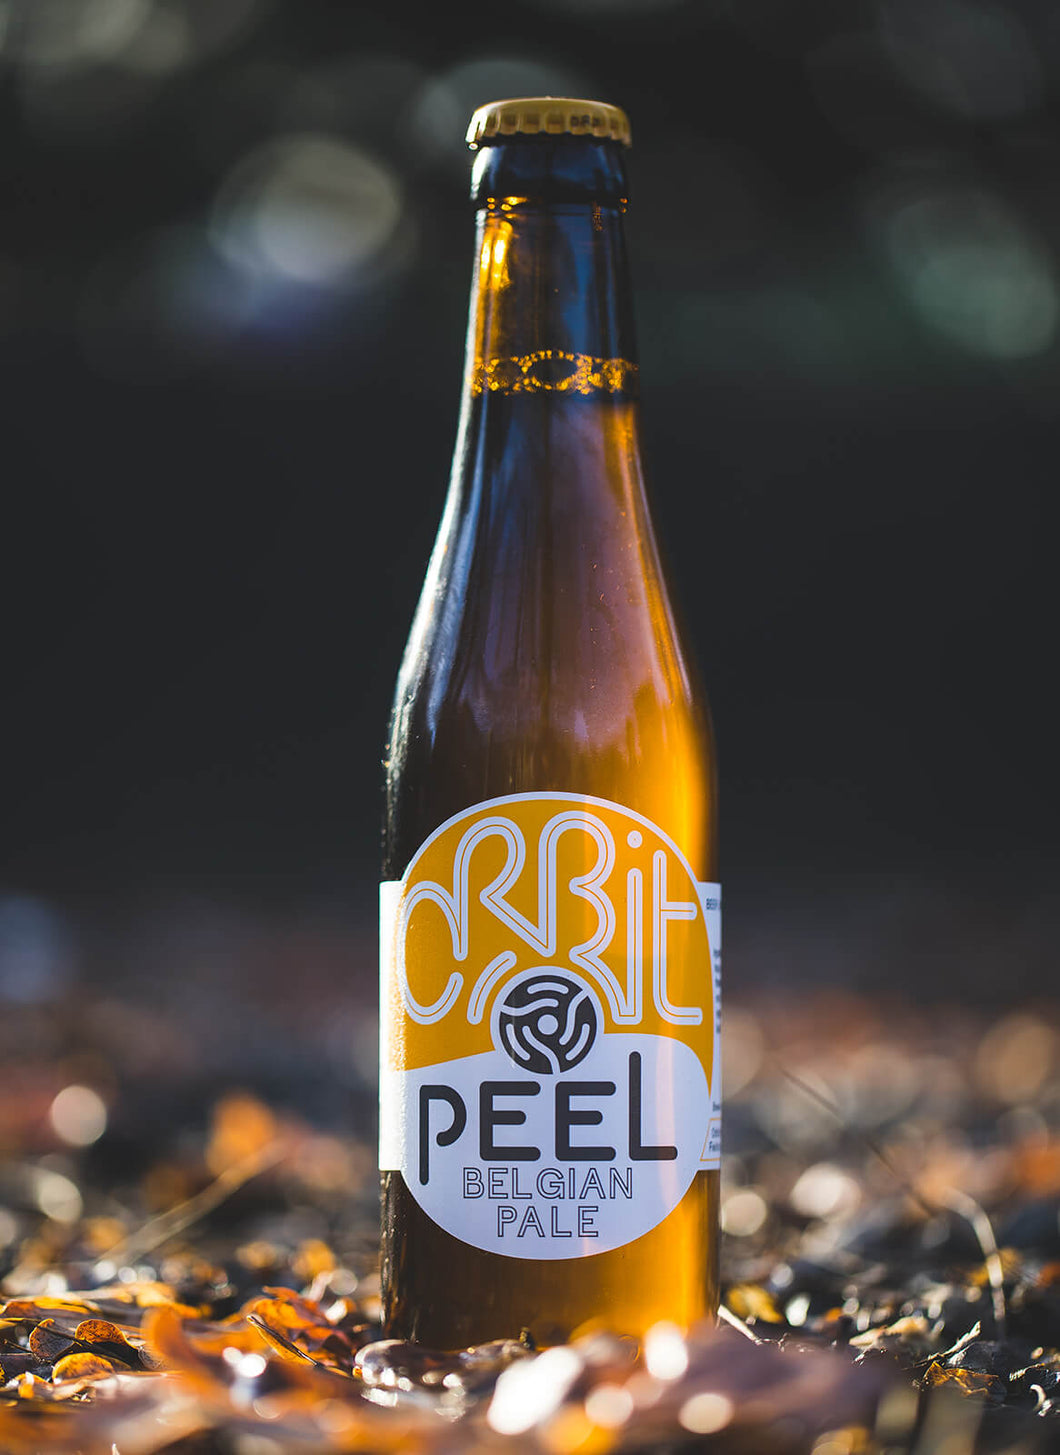 Peel Belgian Pale Ale by Orbit Beers